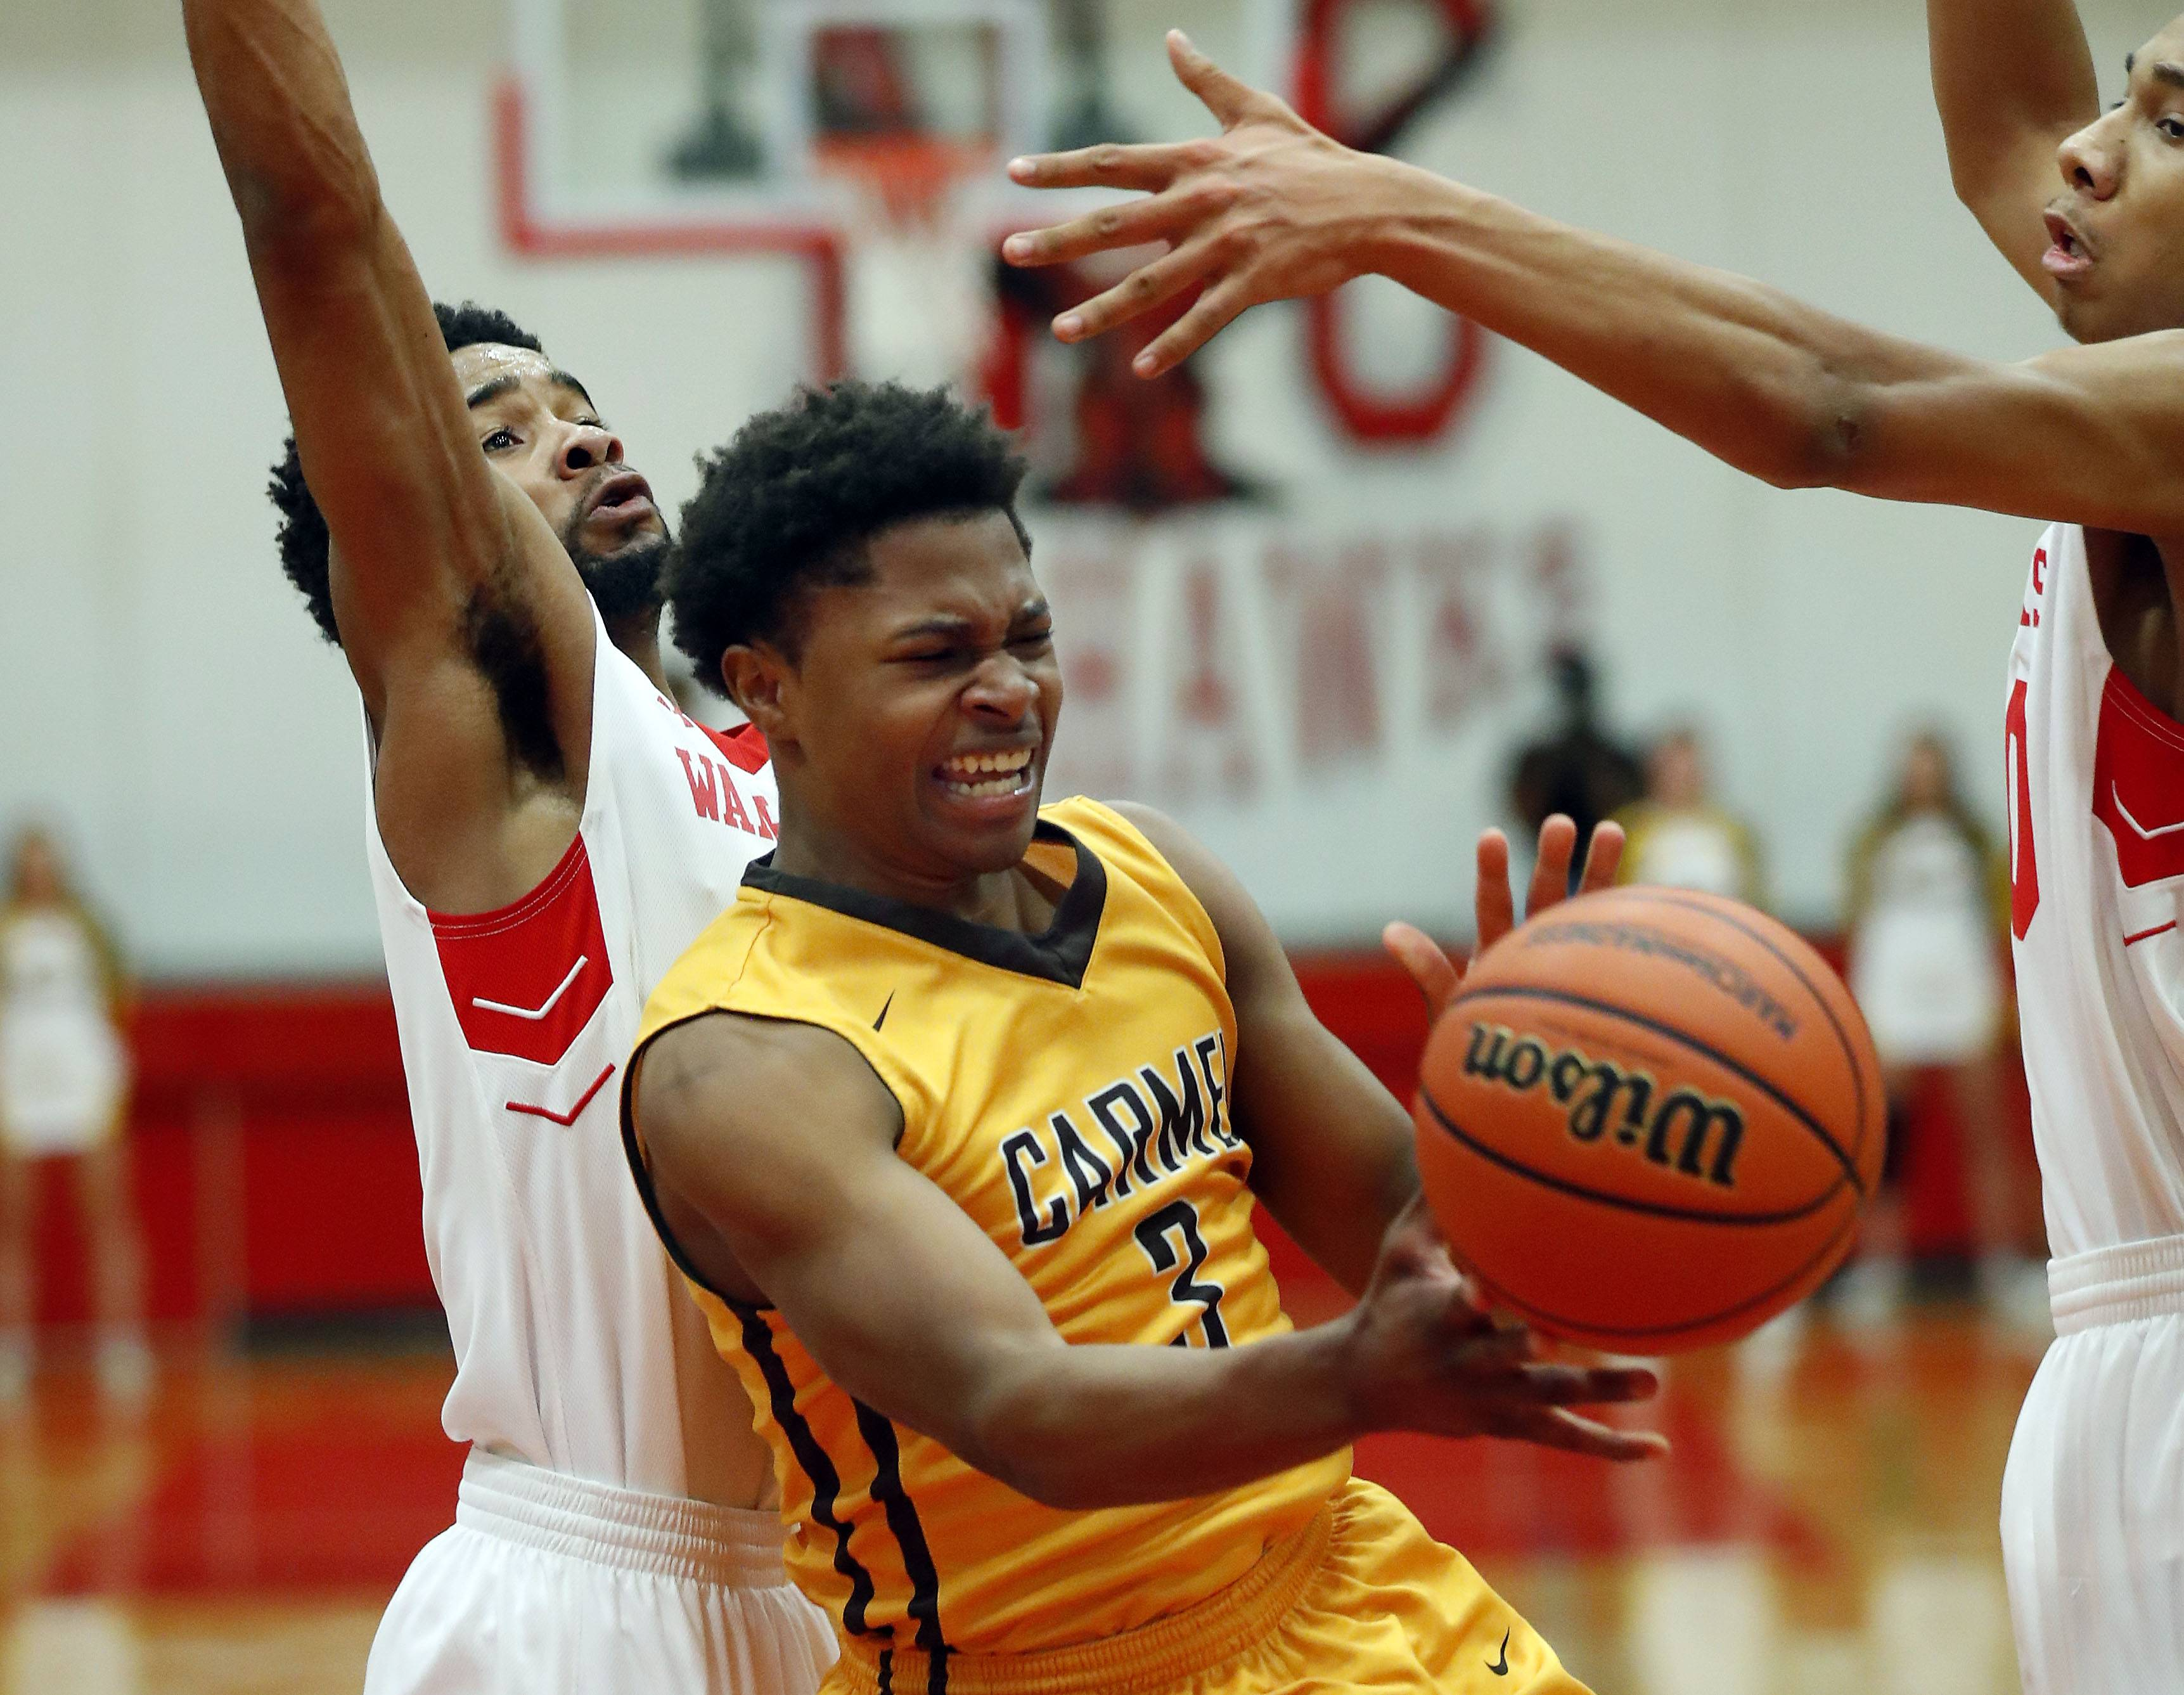 Carmel's Zion Kilpatrick (3) drives on North Chicago's Ishaun Walker during Class 3A sectional semifinal play Wednesday at North Chicago.